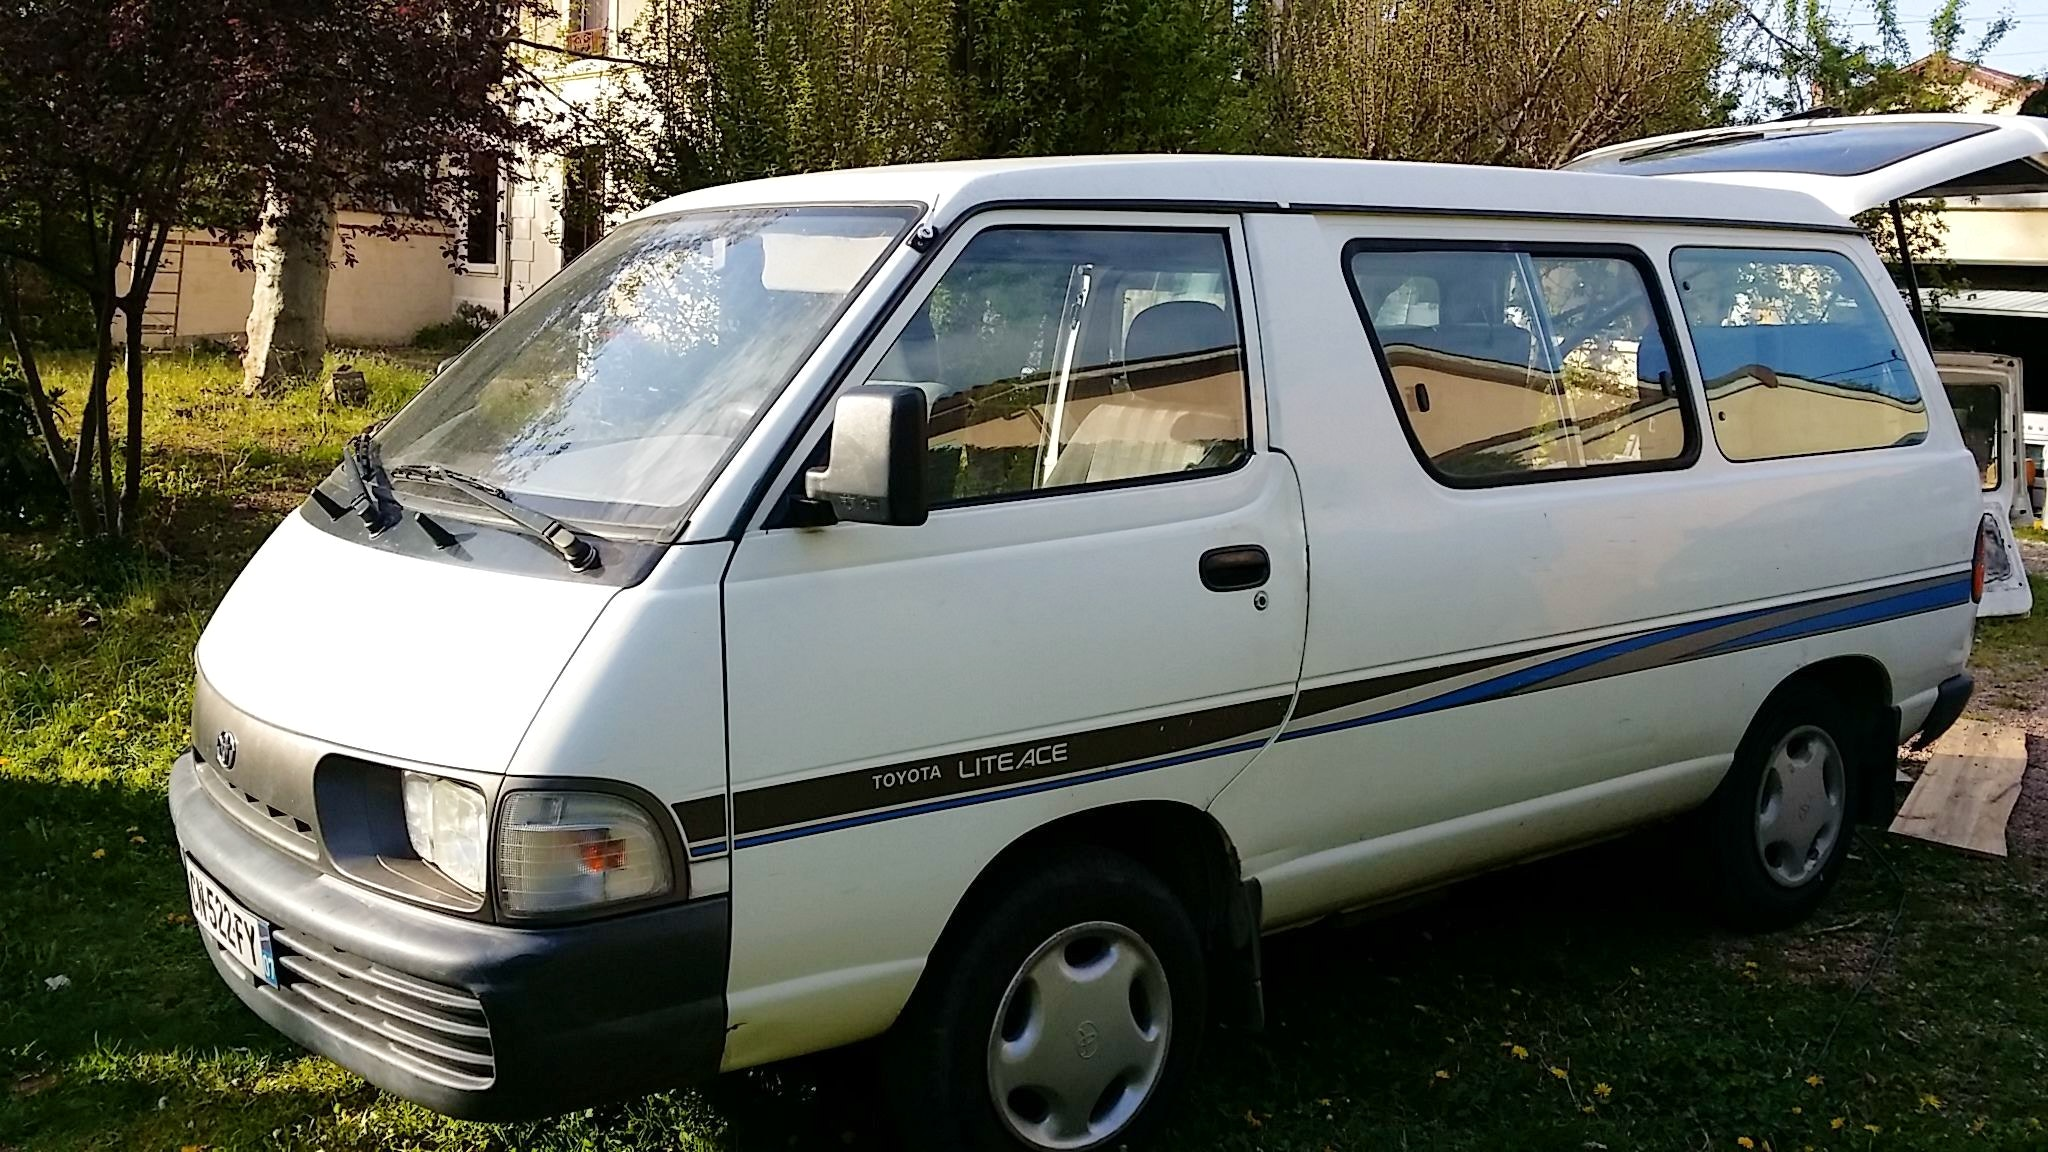 toyota lite ace, 1993, Diesel, 8 places